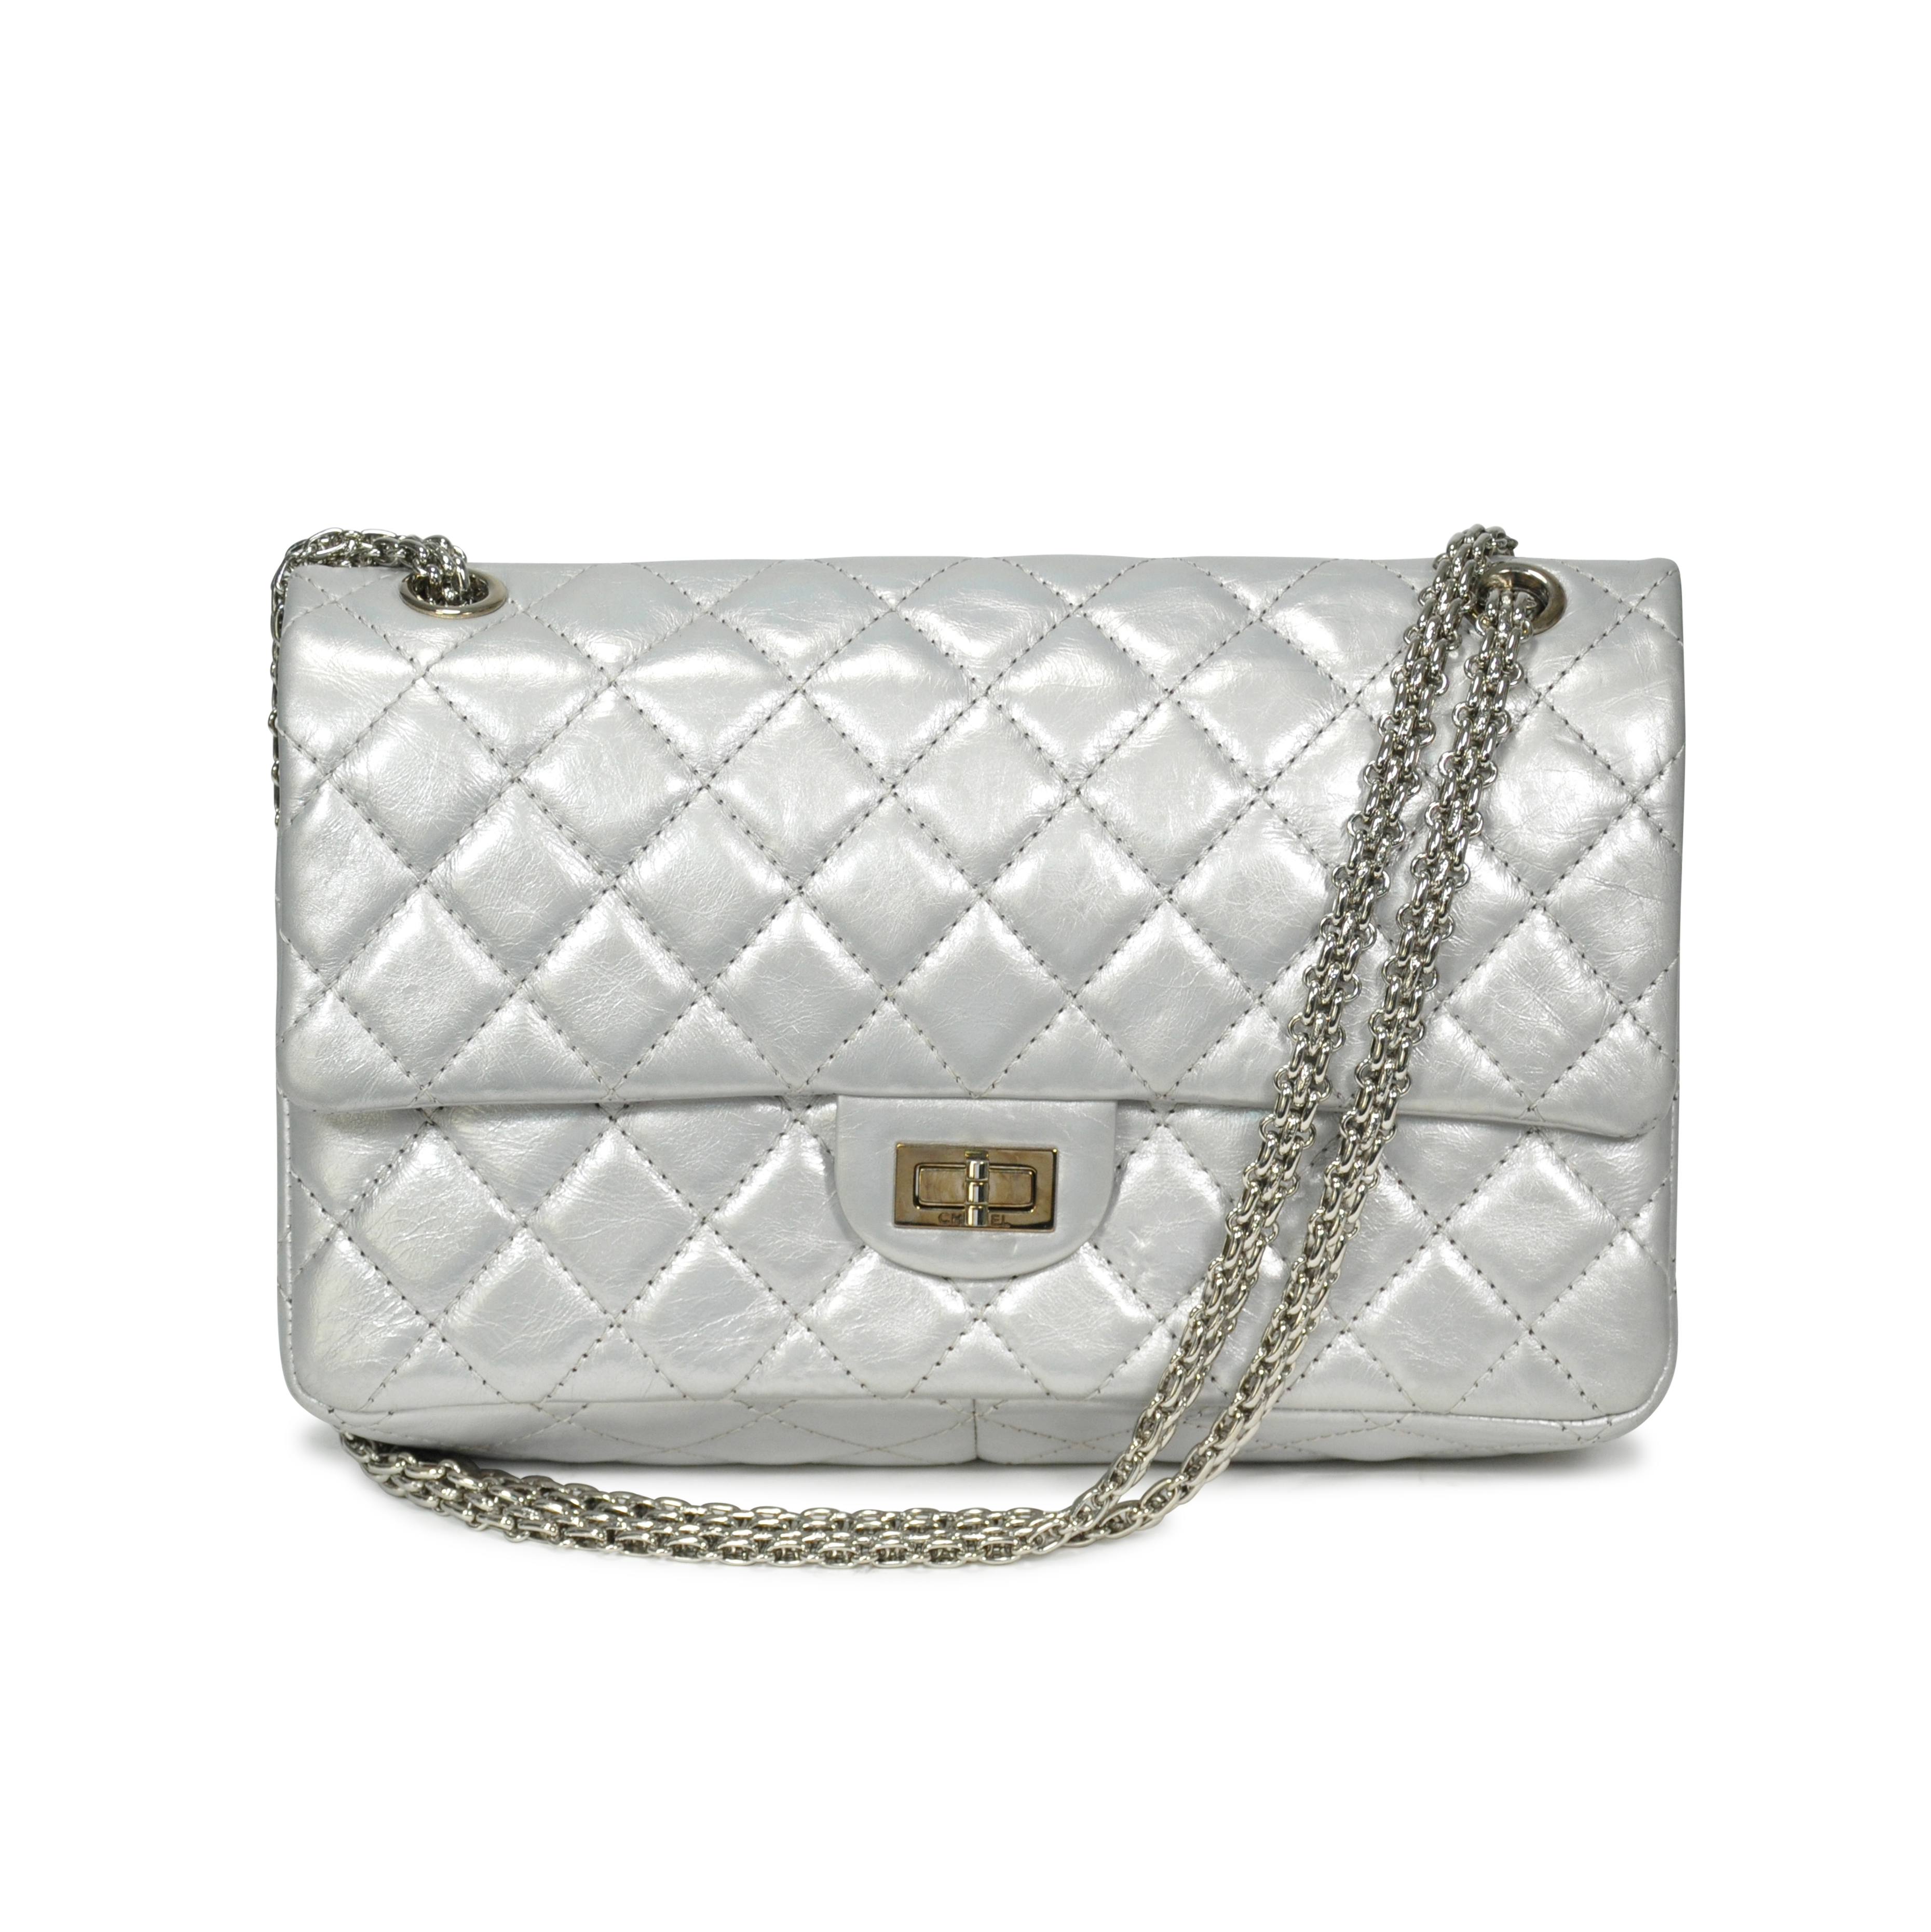 1be4e1121267 Authentic Second Hand Chanel Distressed Leather Reissue 2.55  (PSS-183-00054) | THE FIFTH COLLECTION